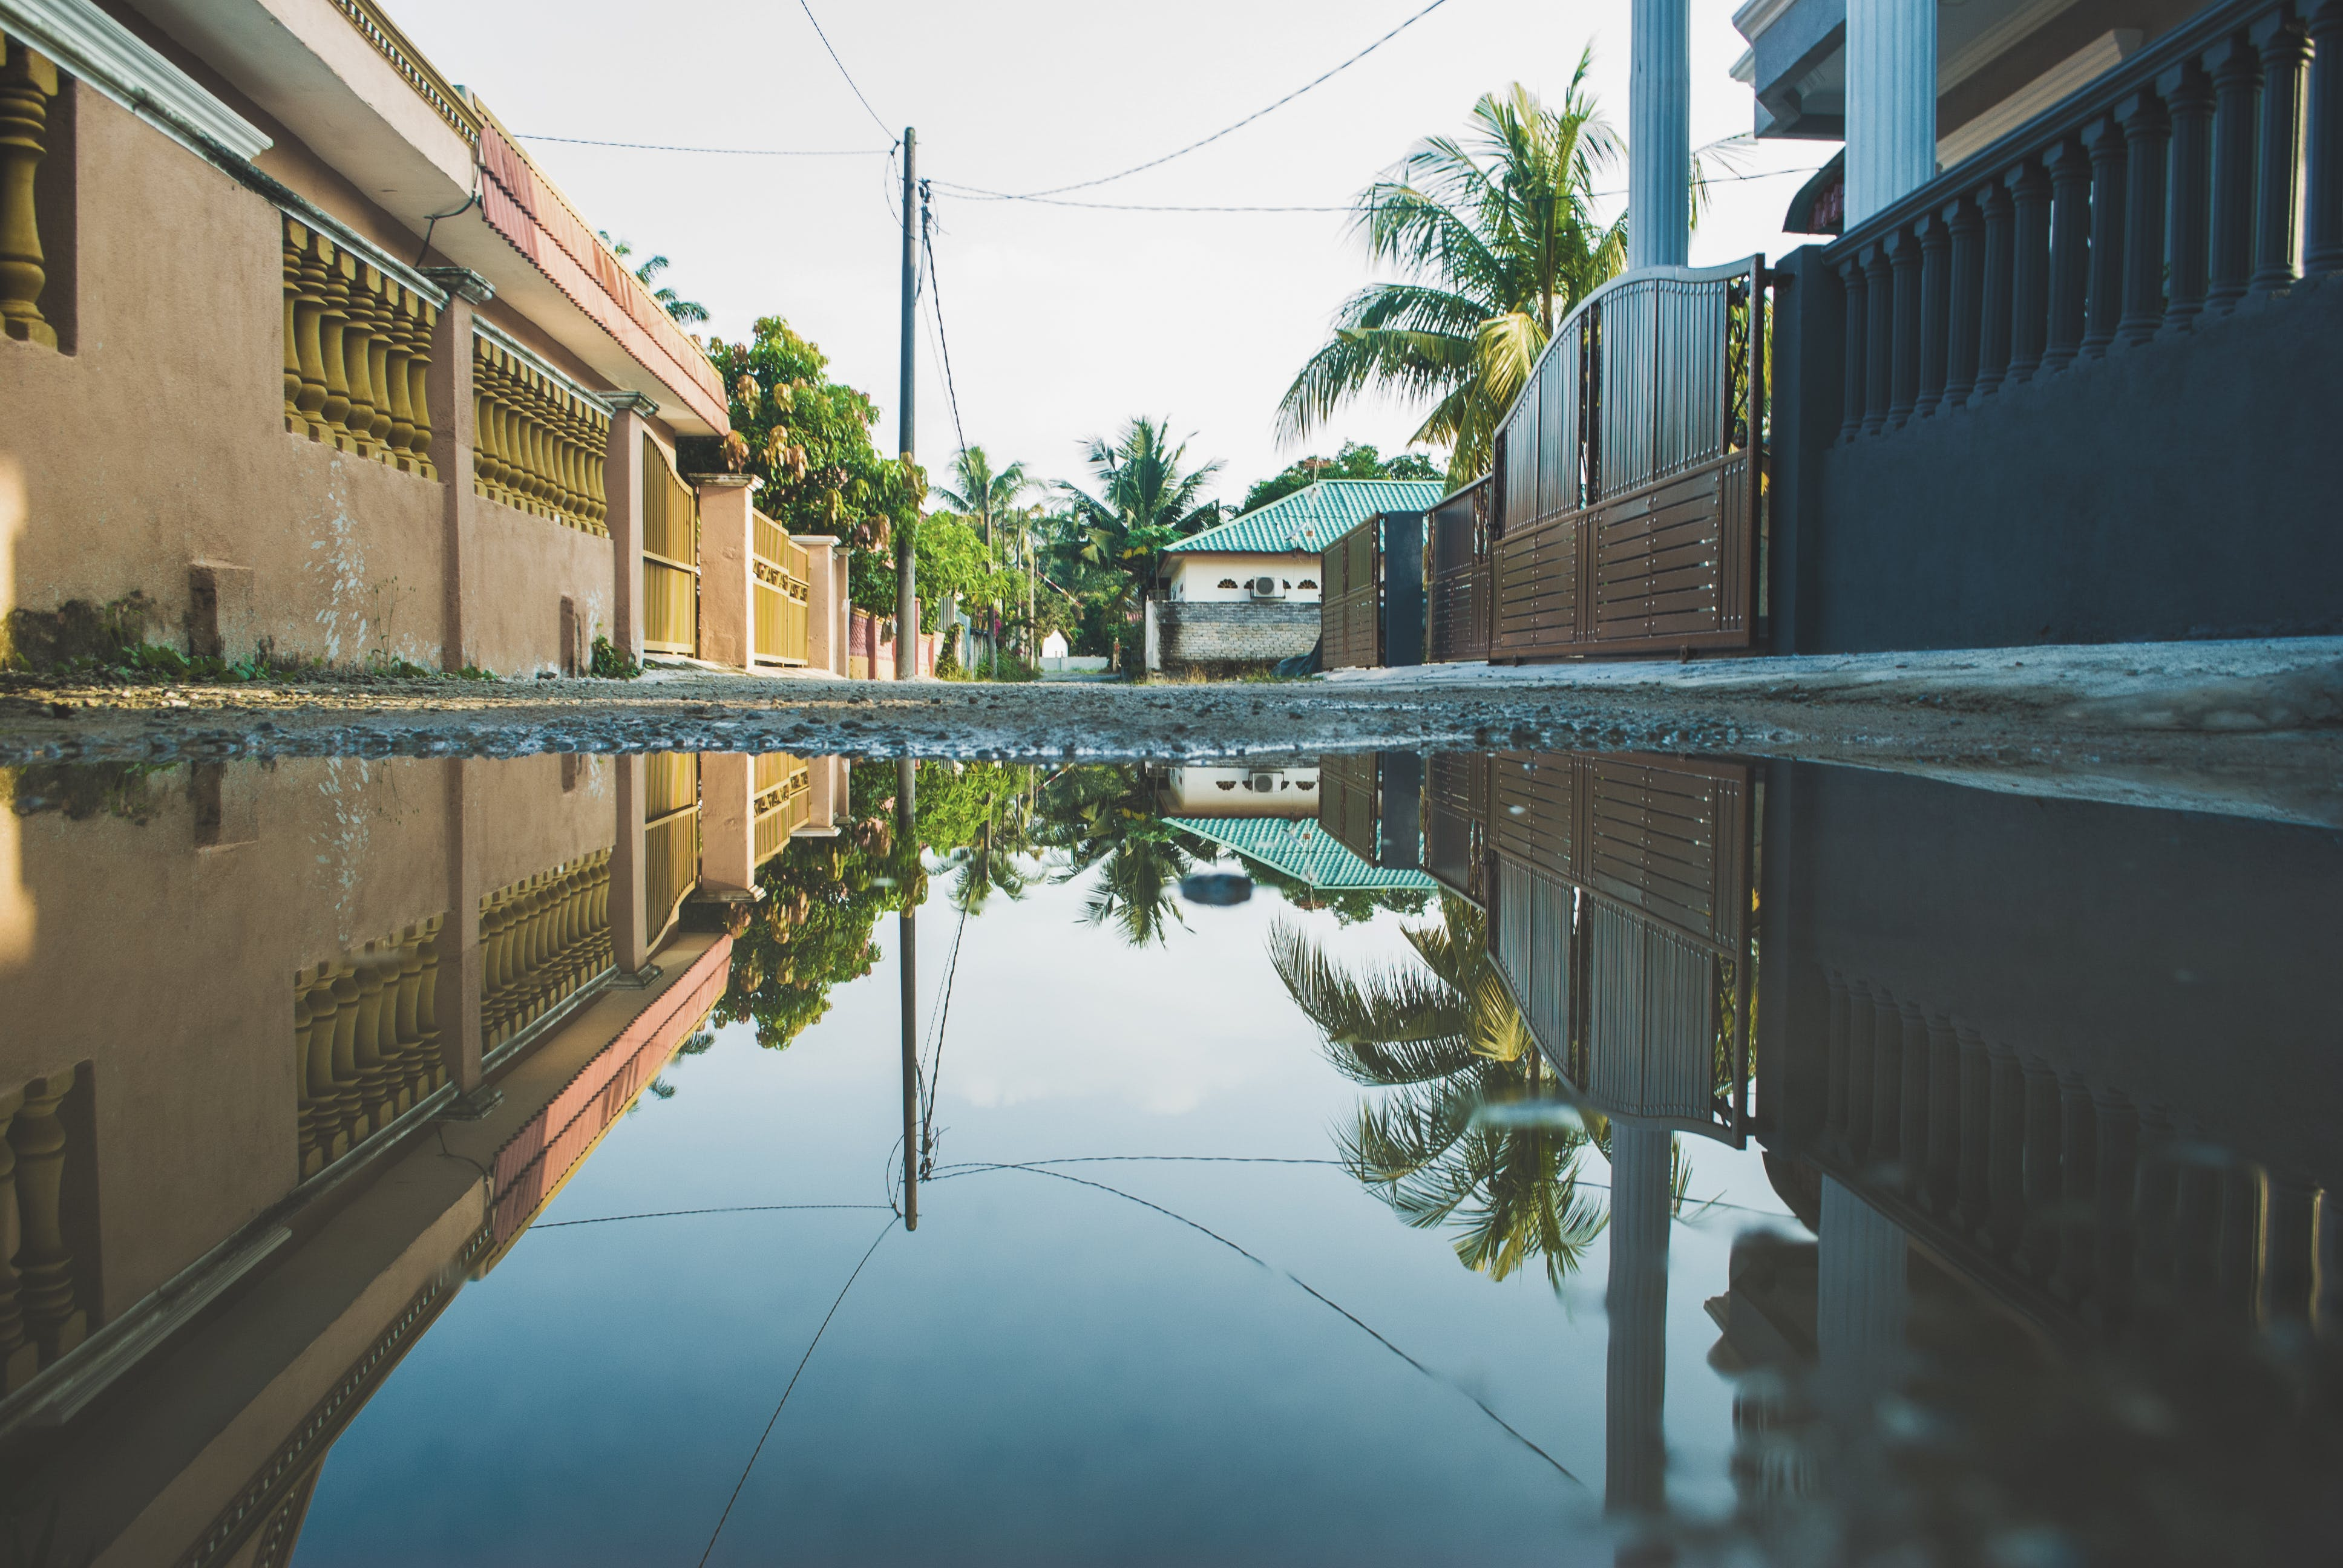 Reflection of Street in Puddle